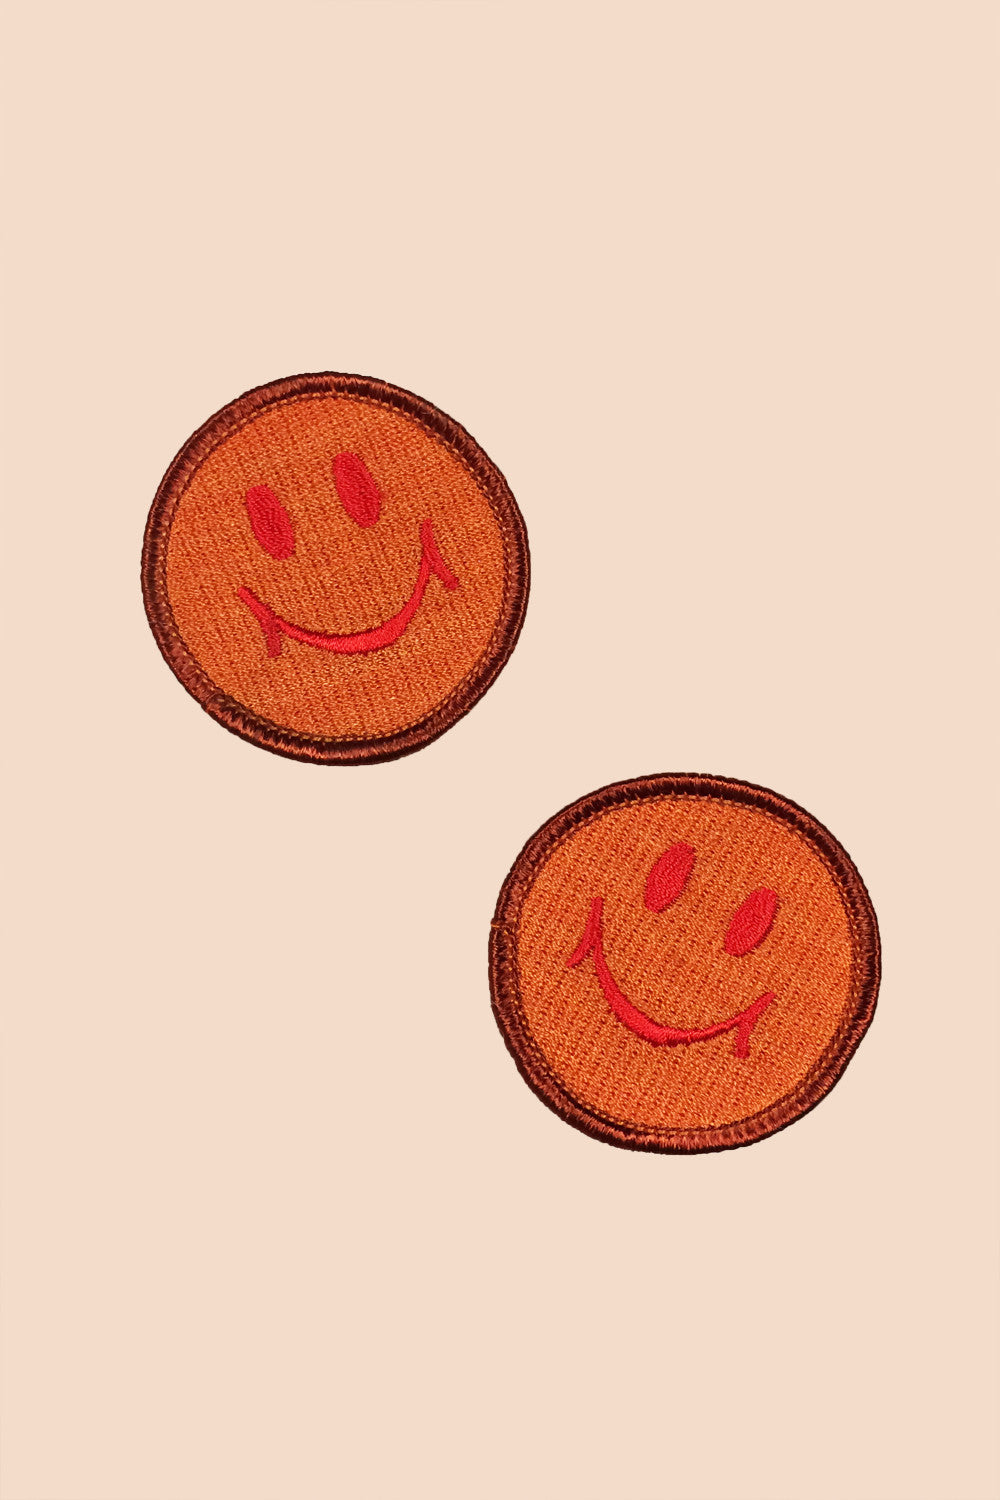 Smiley Patch in Tan